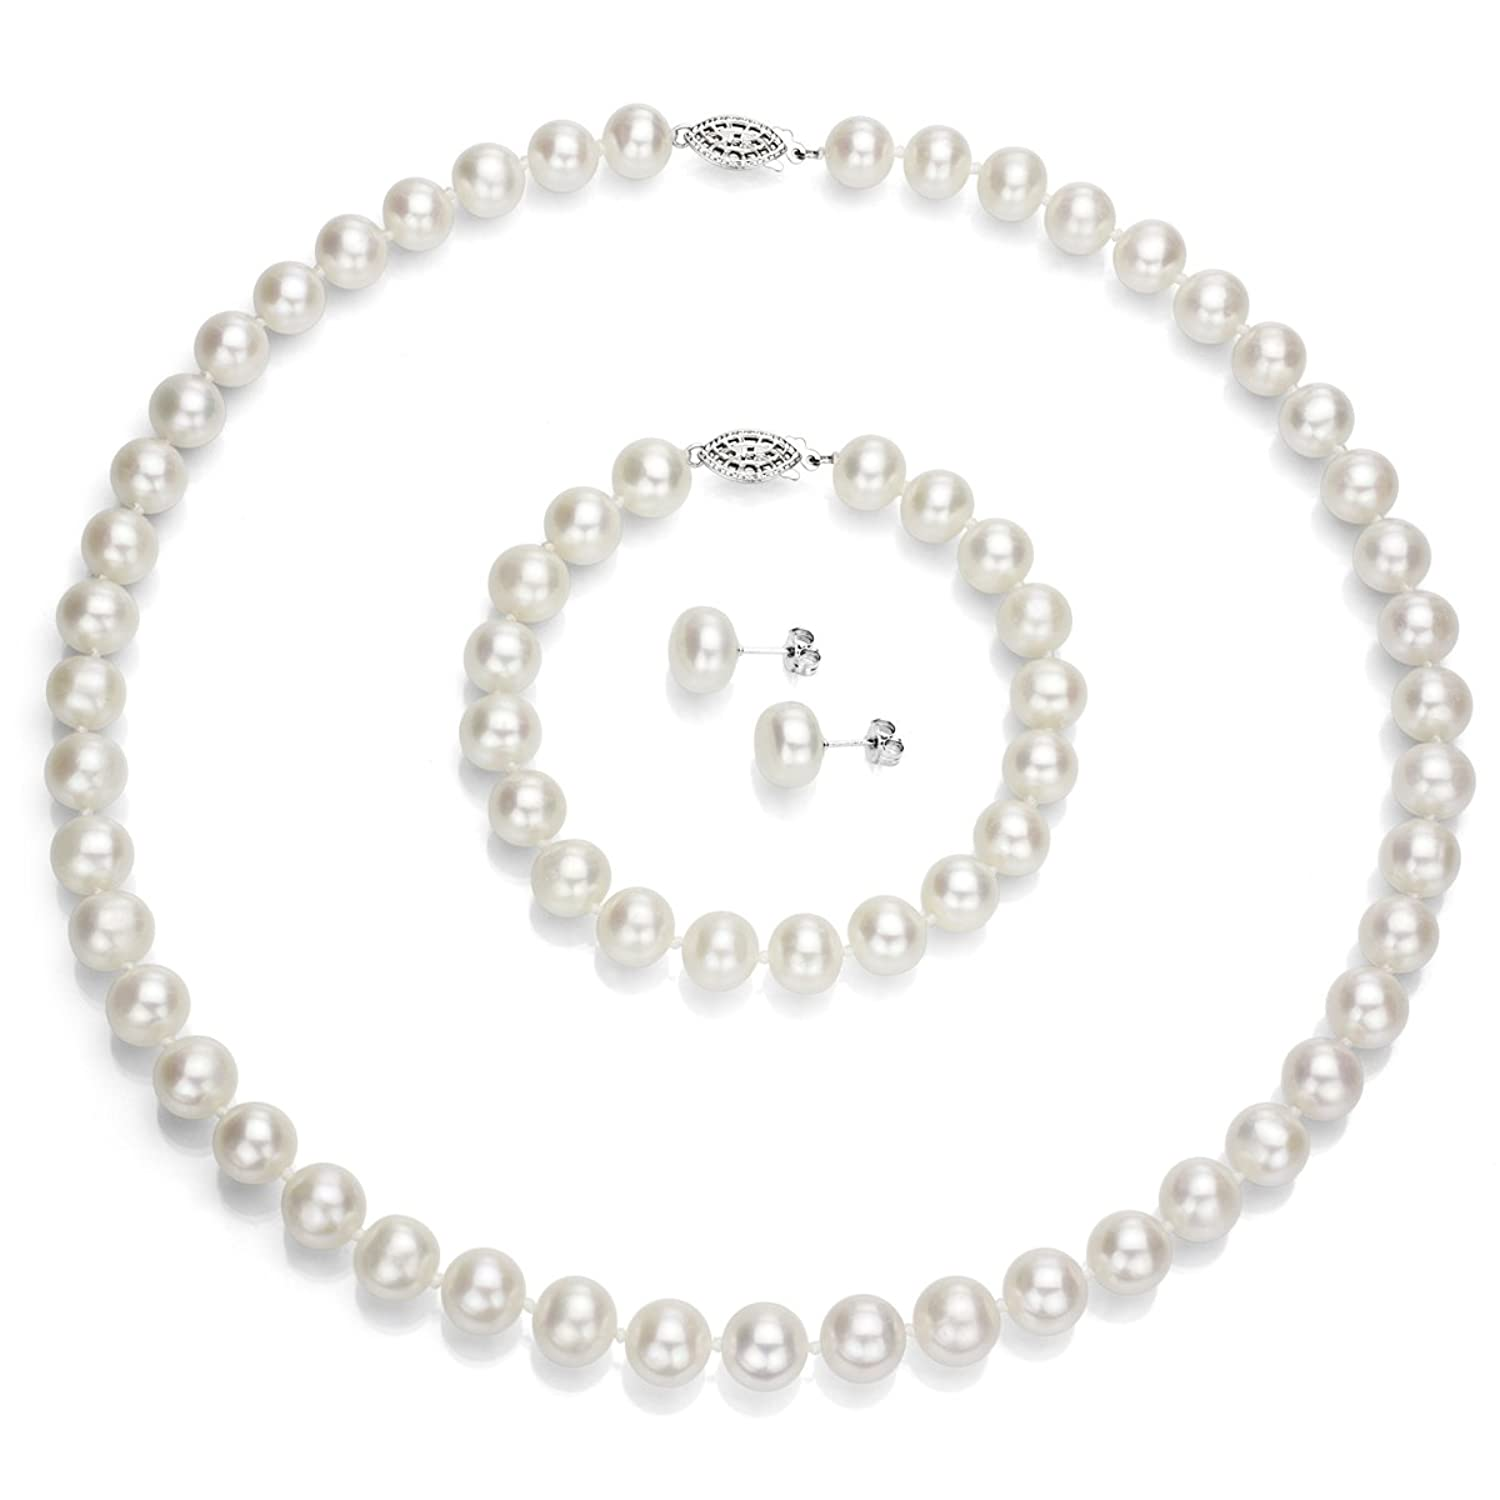 Amazon: Sterling Silver 995mm White Freshwater Cultured Pearl  Necklace 18